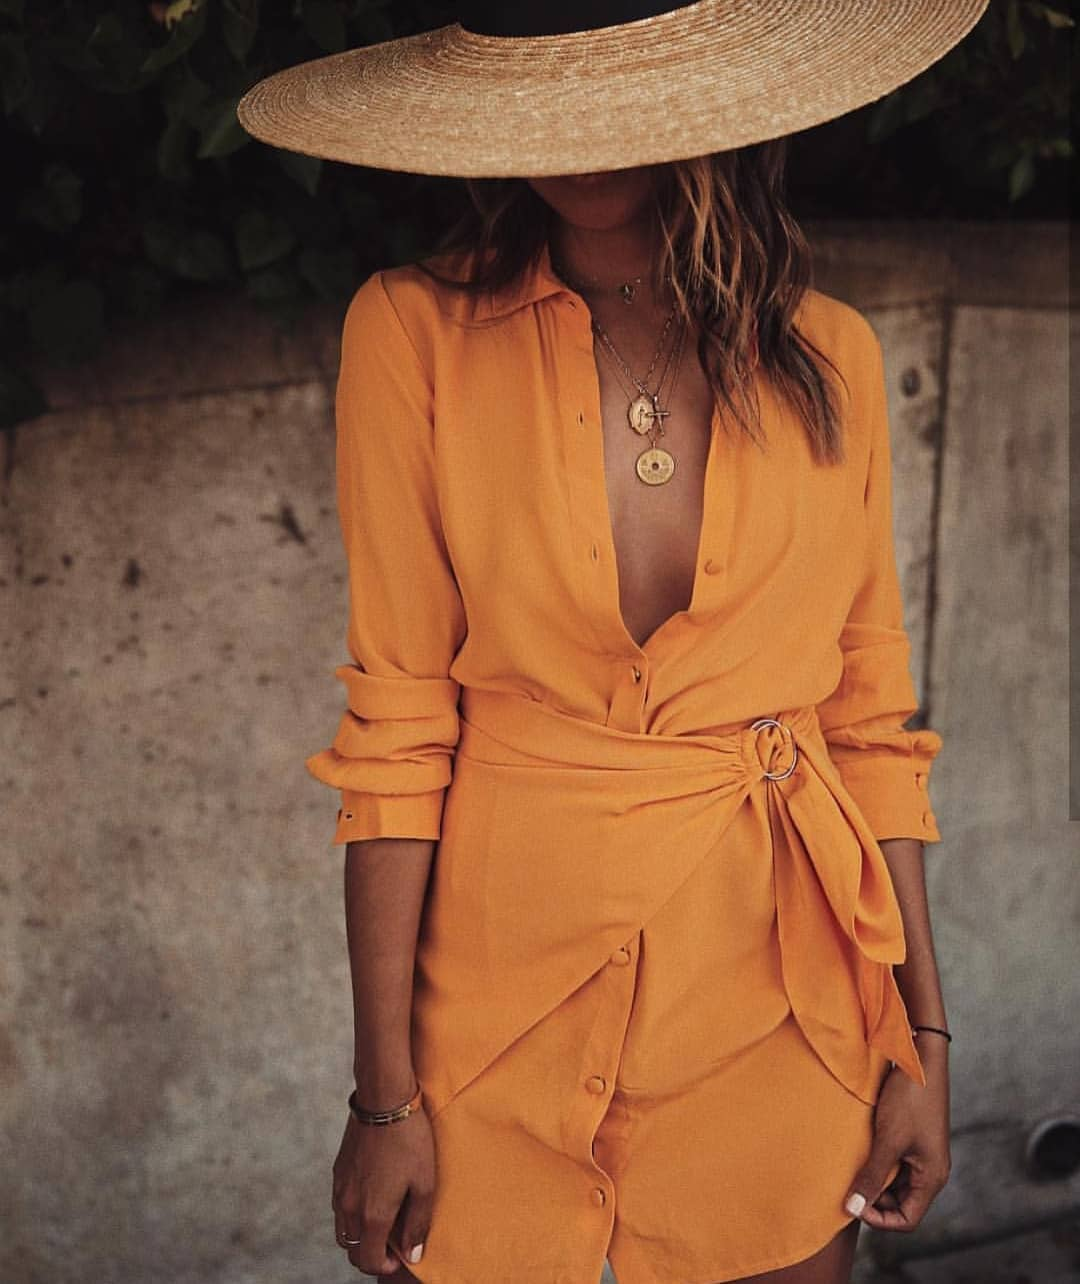 Wrap Shirtdress In Orange-Yellow For Summer Vacation 2019